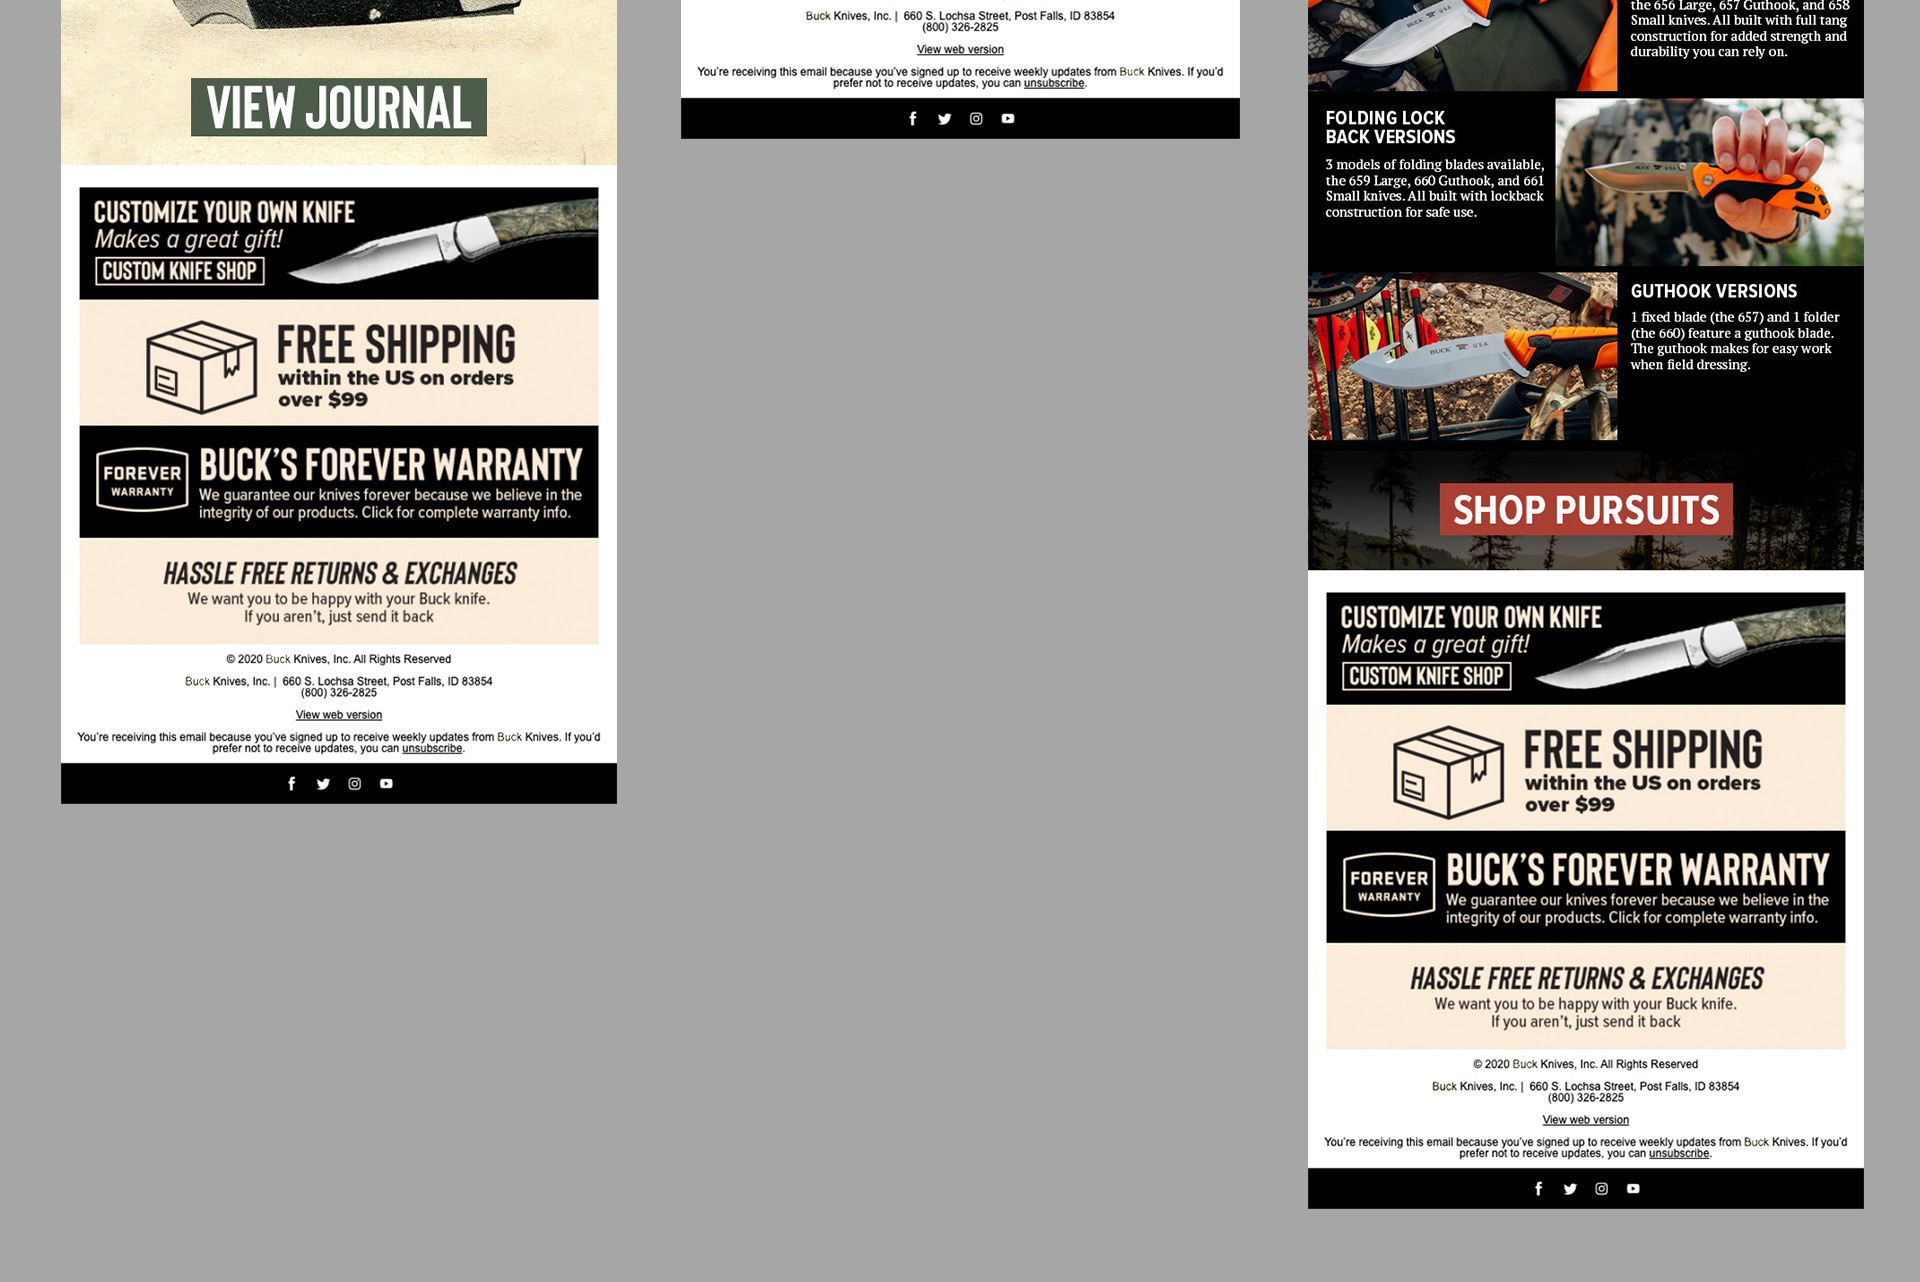 Examples of email design by graphic designer Justin Baar